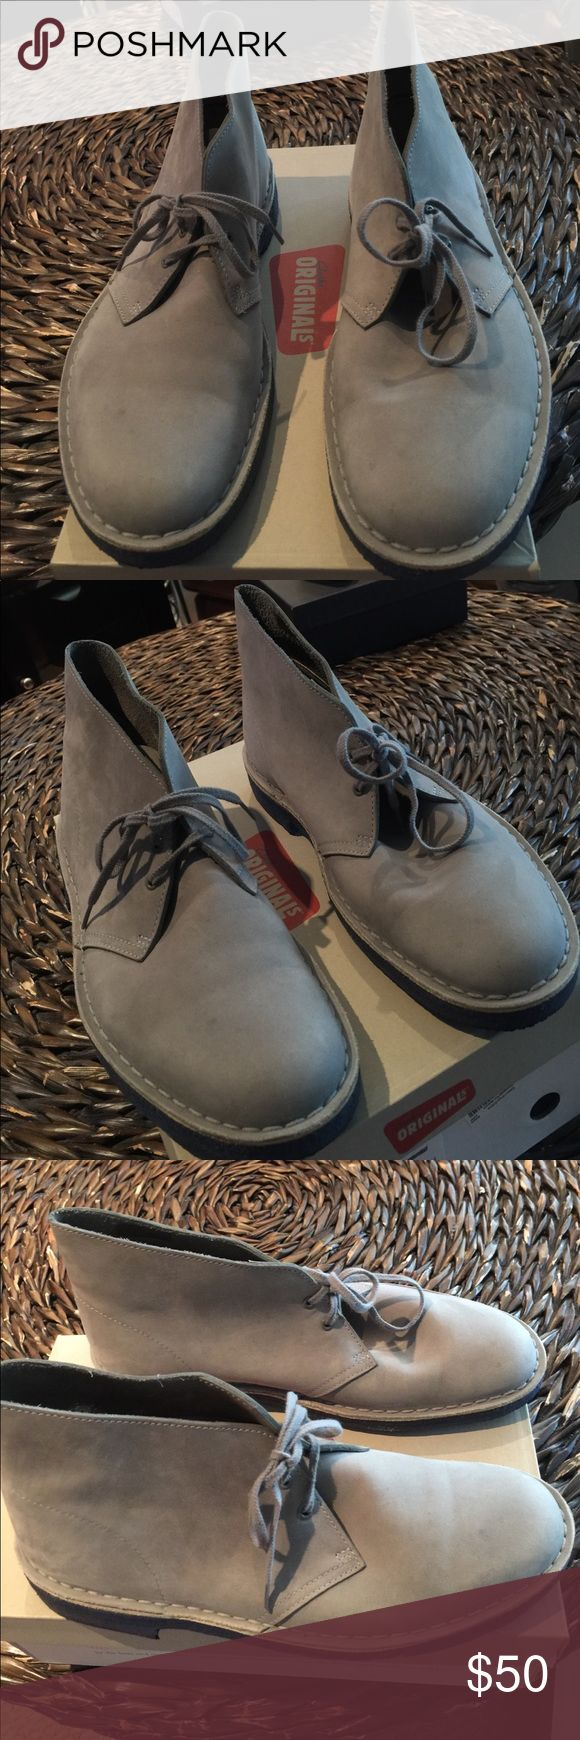 Men Chukka Boots Grey Suede Desert Boots, very good condition Clarks ORIGINALS Shoes Chukka Boots